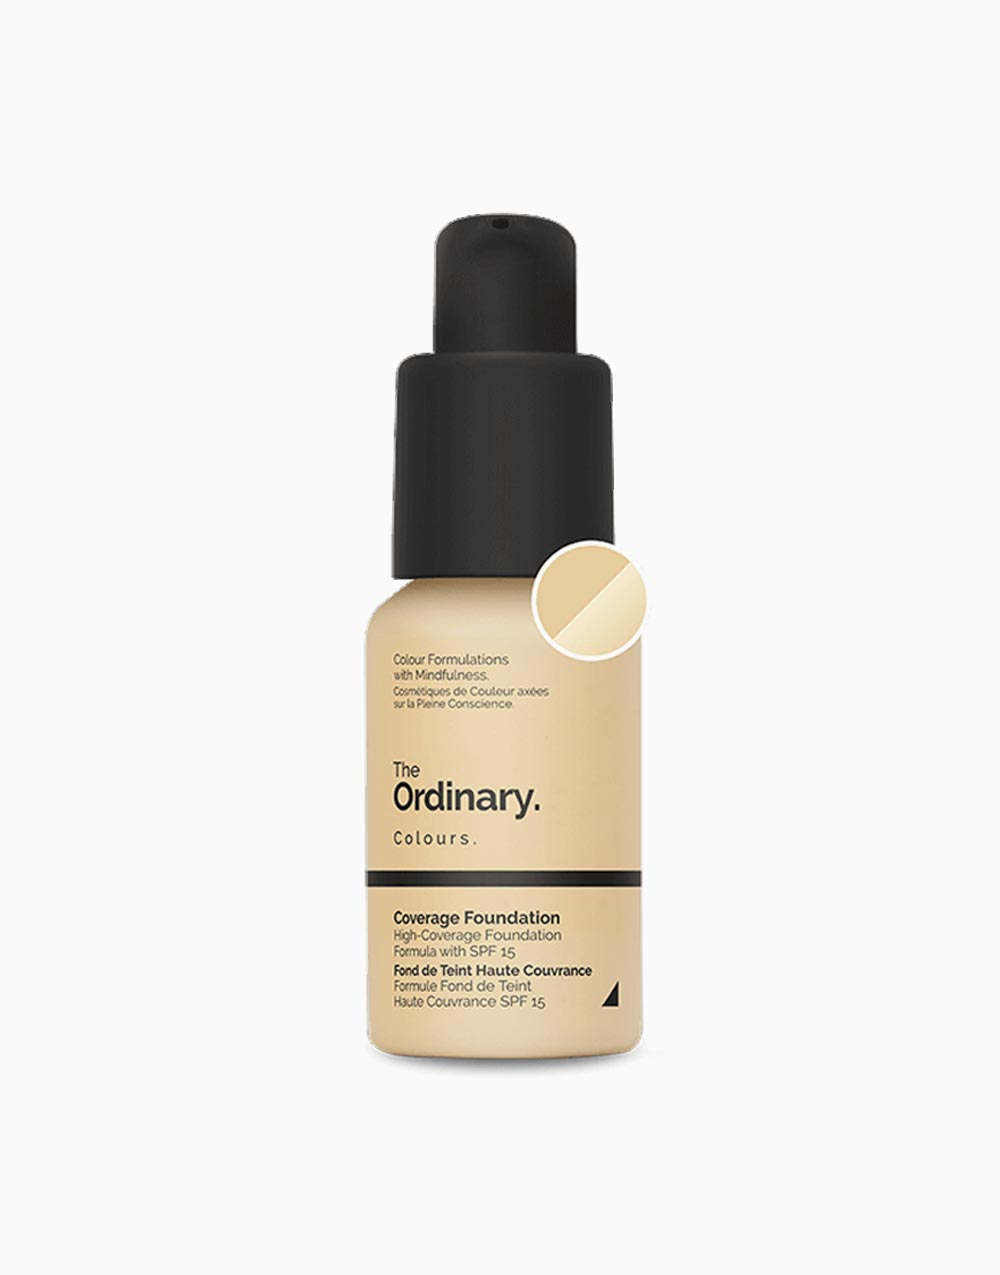 Coverage Foundation by The Ordinary | 2.0YG